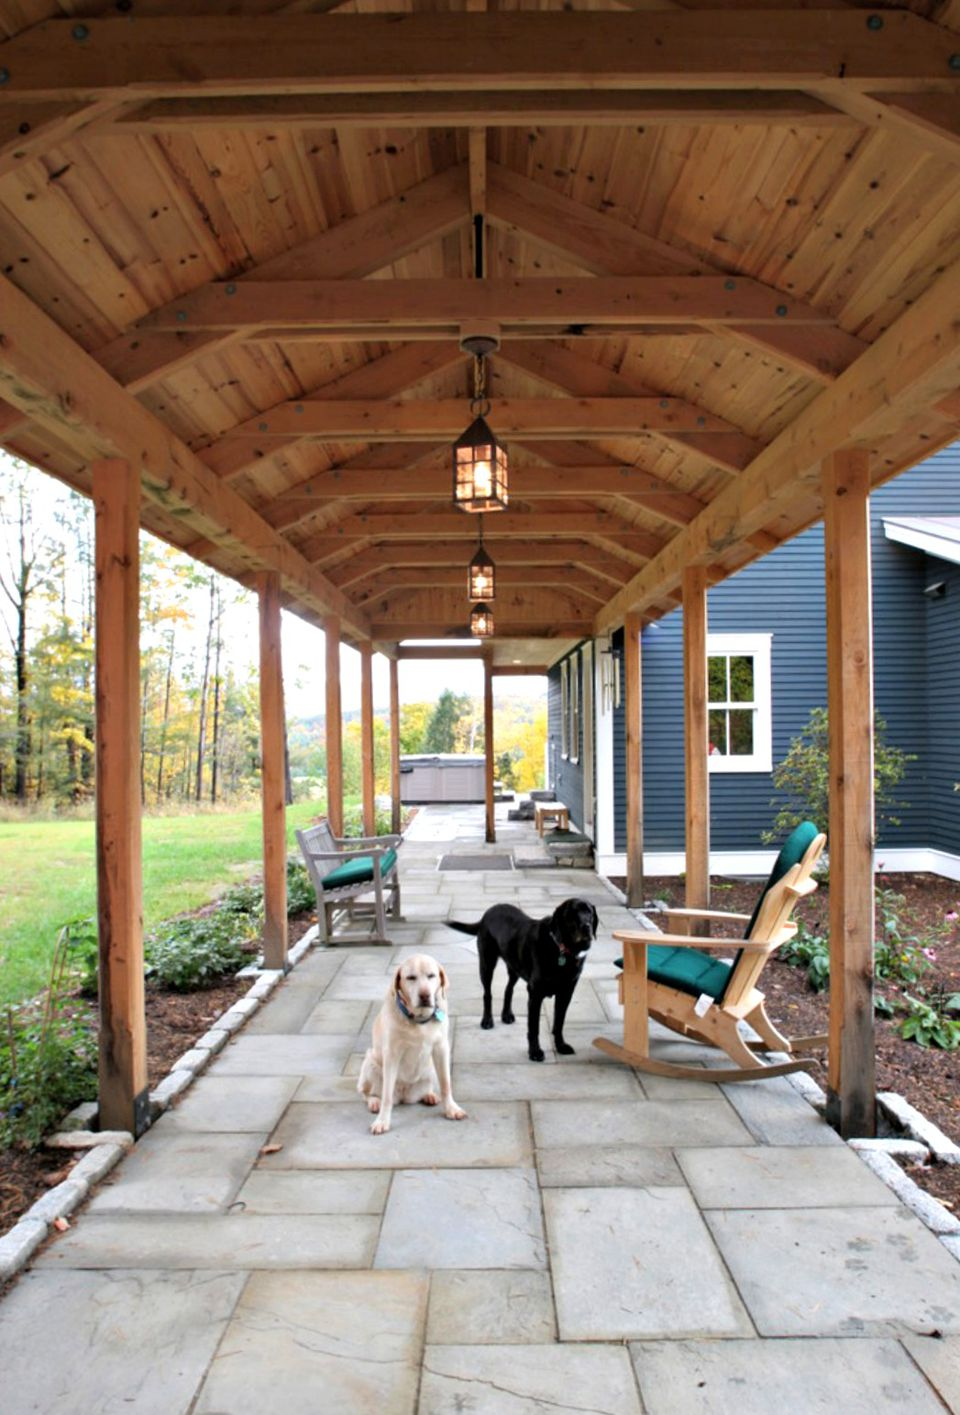 50 Stylish Covered Patio Ideas on Backyard Covered Patio Designs id=26484